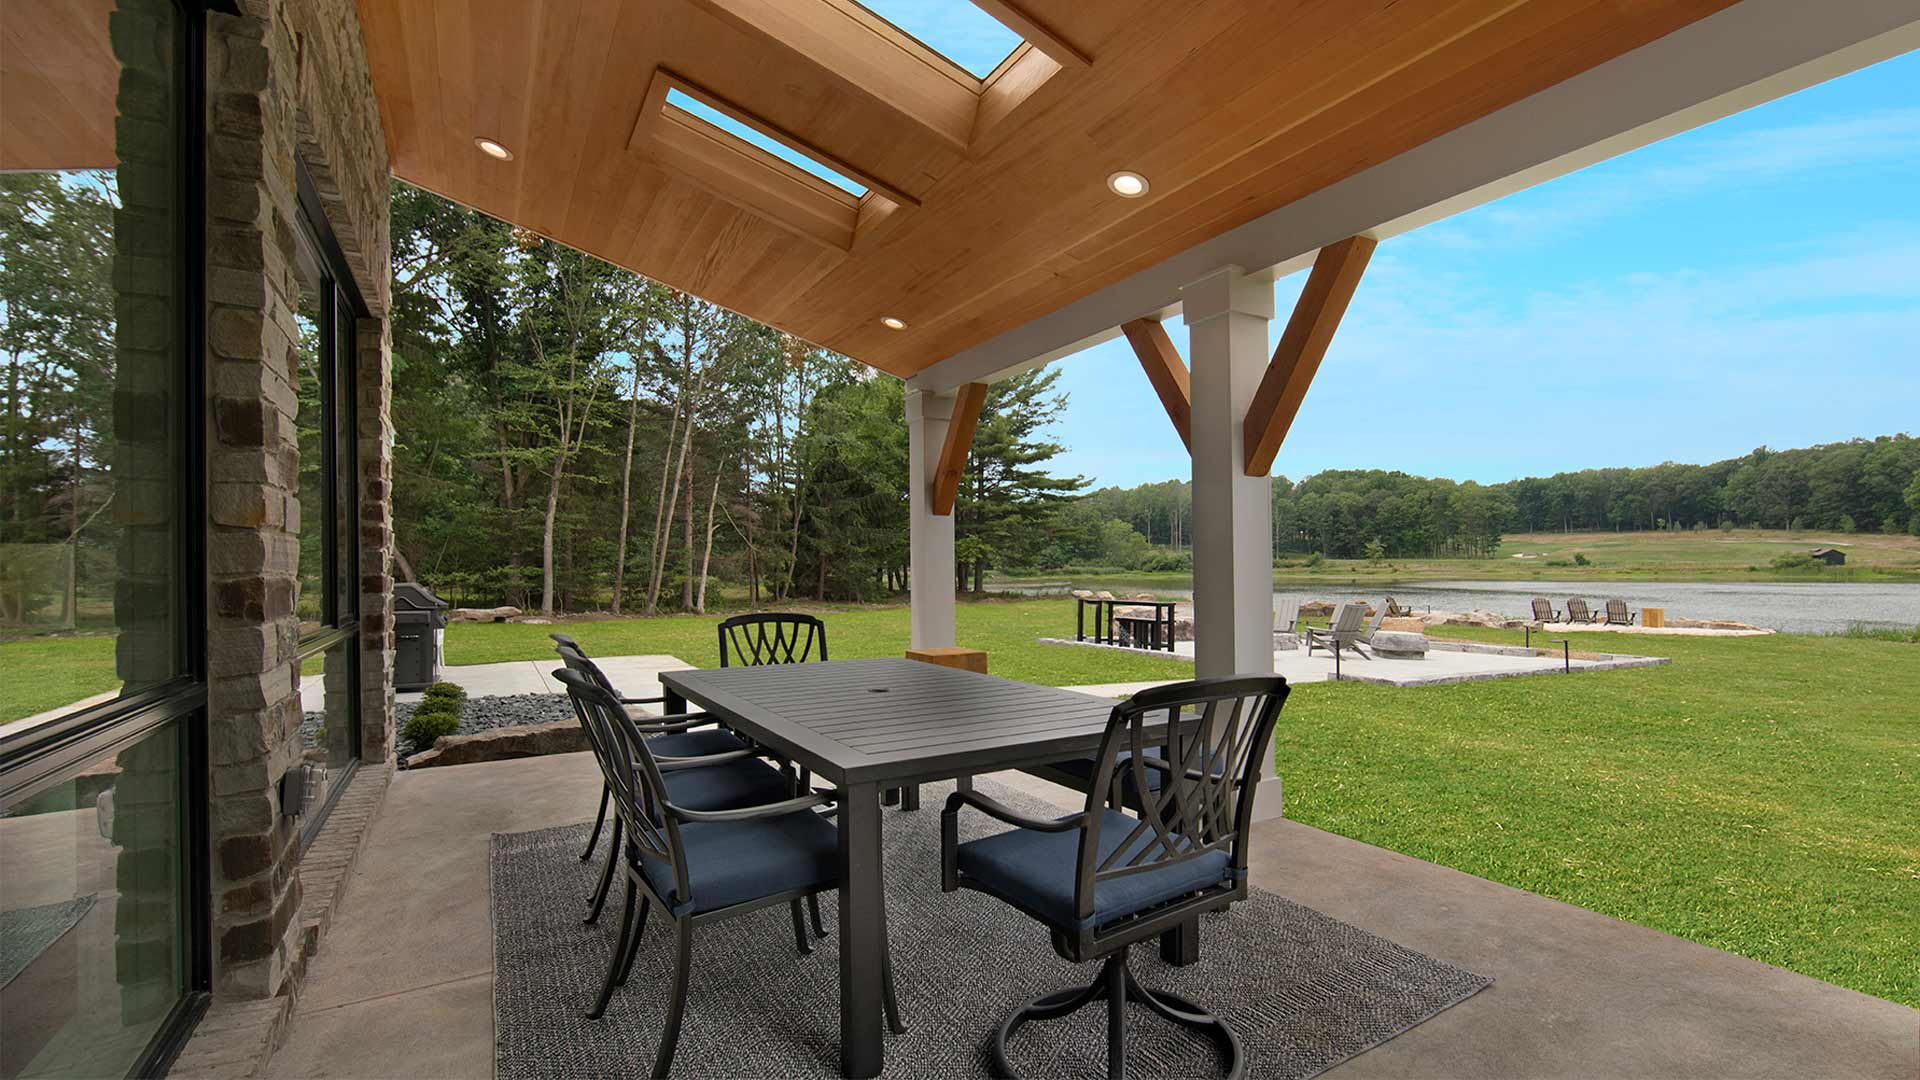 exterior shot of the patio with a table and chairs. There is a covering over the patio and a view of the lake